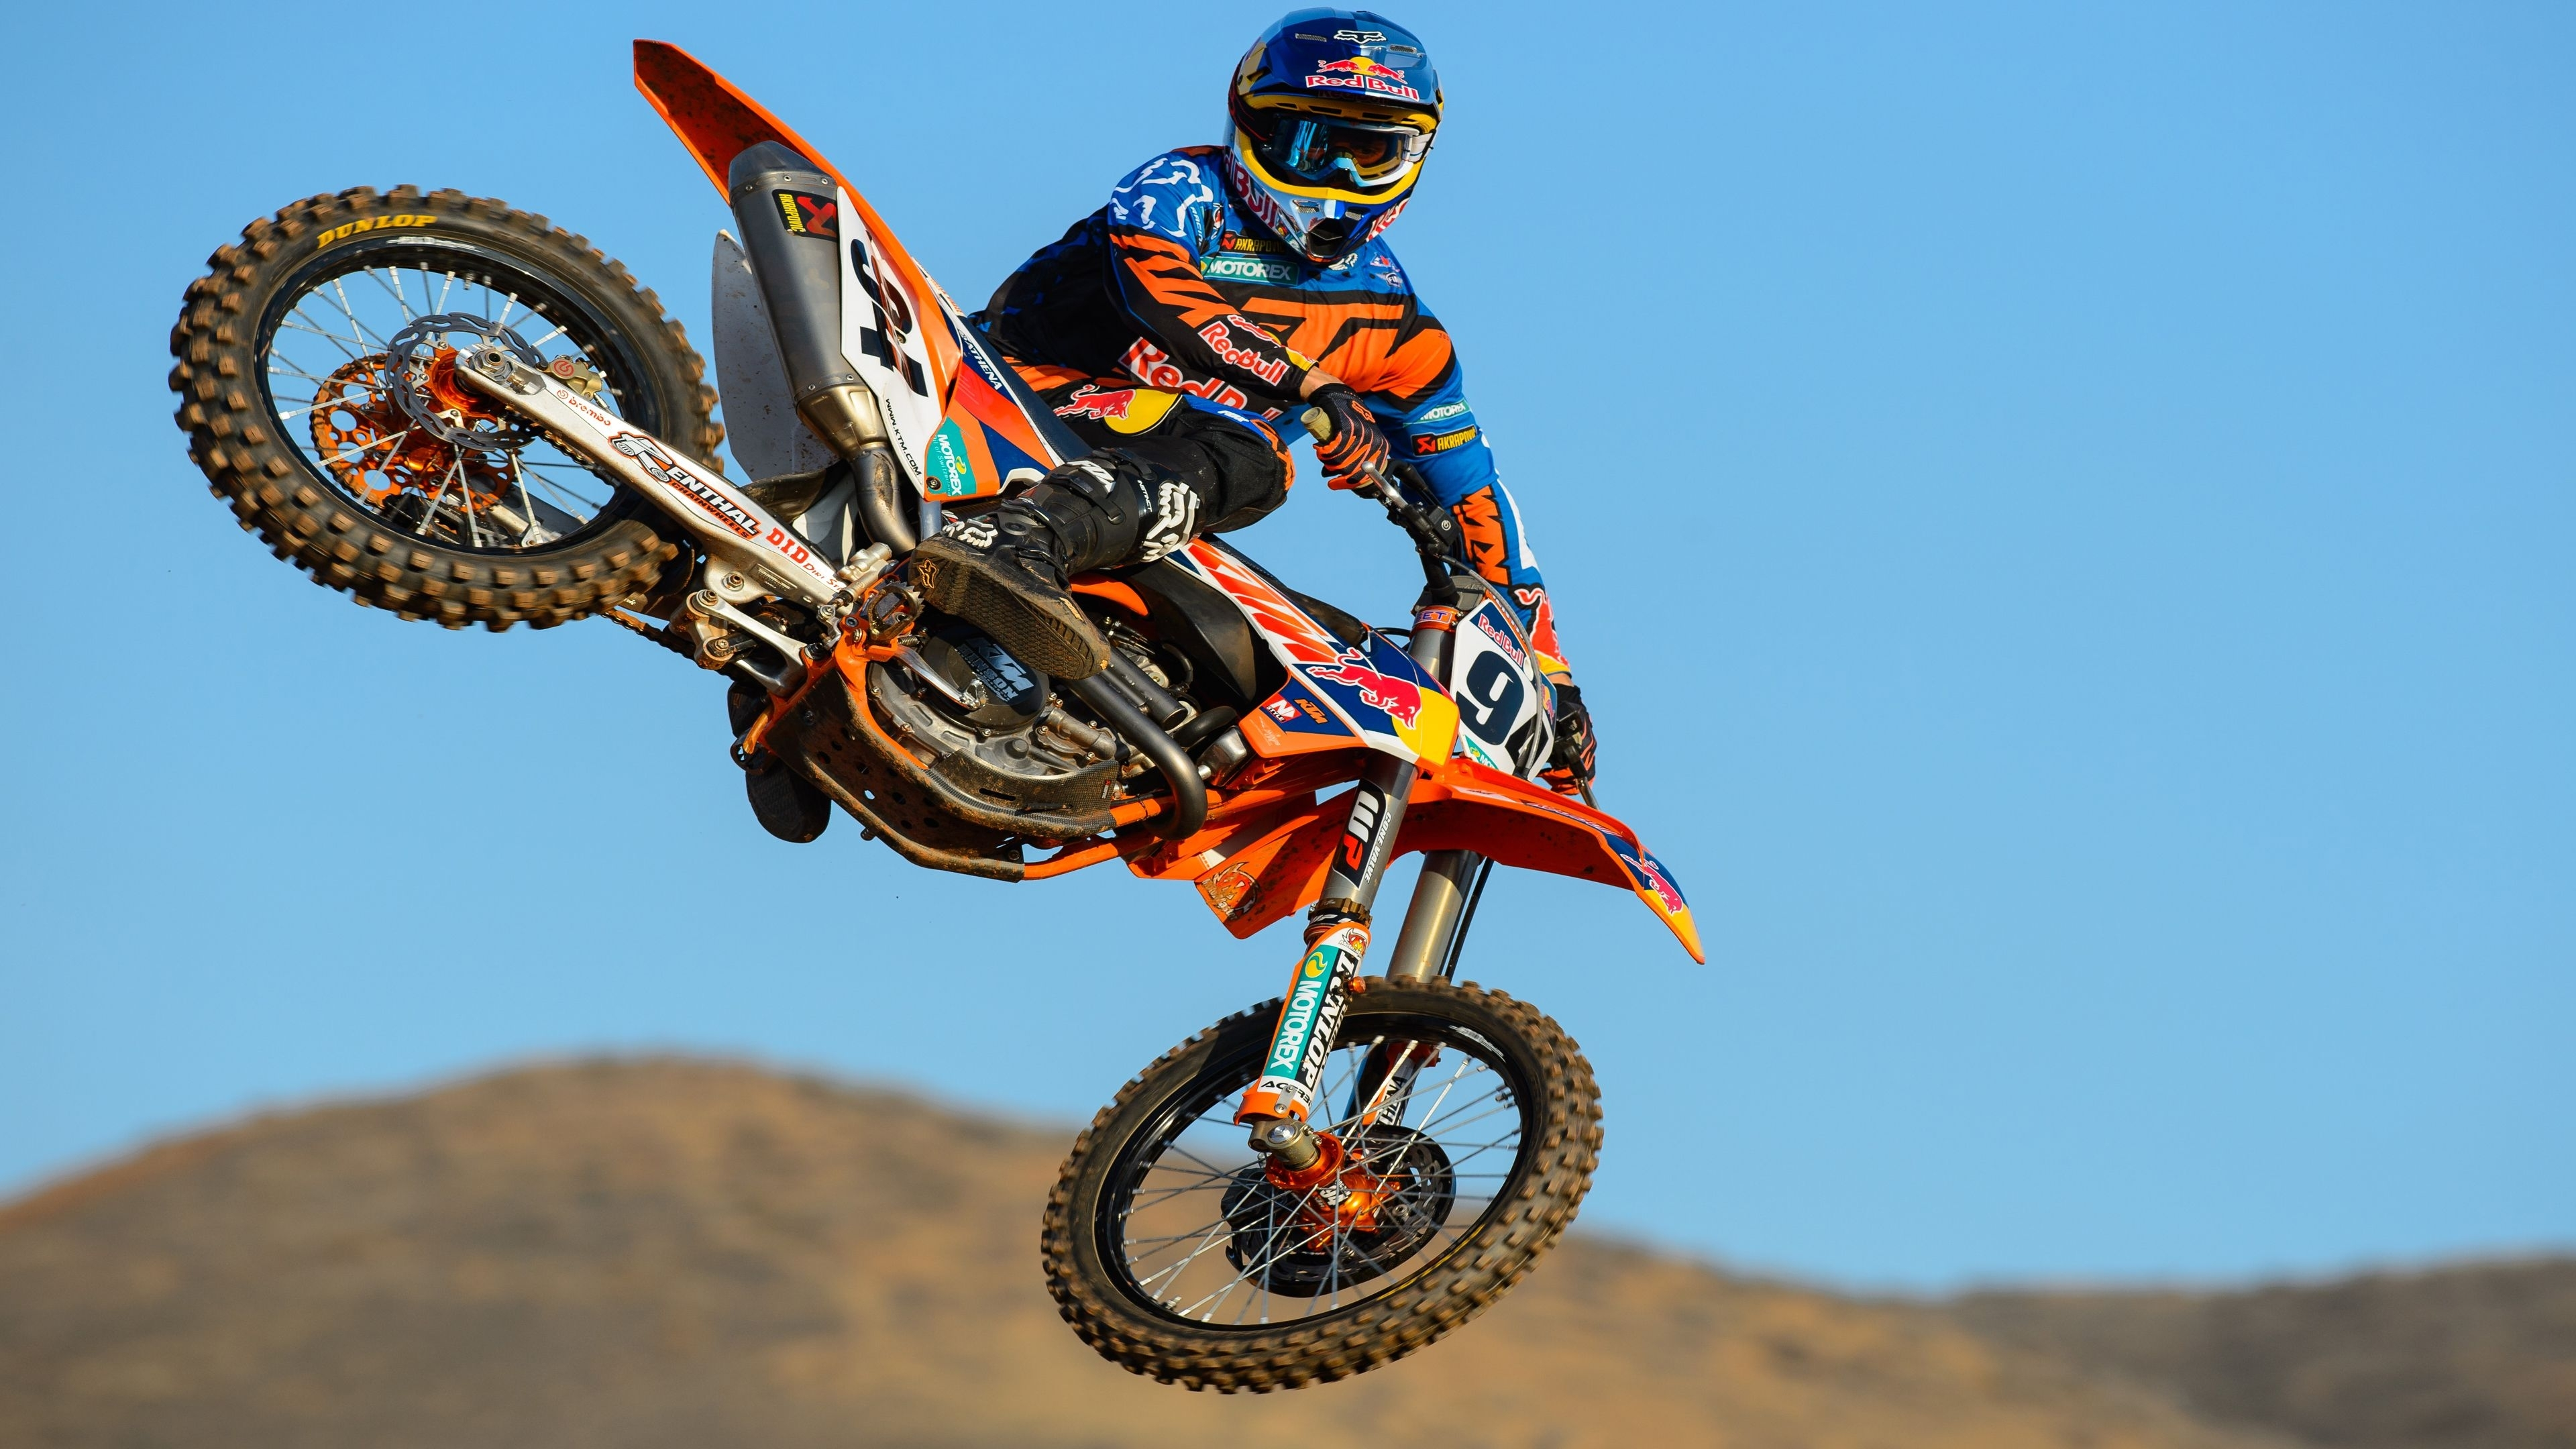 10 New Ktm Dirt Bike Wallpapers Full Hd 1080p For Pc